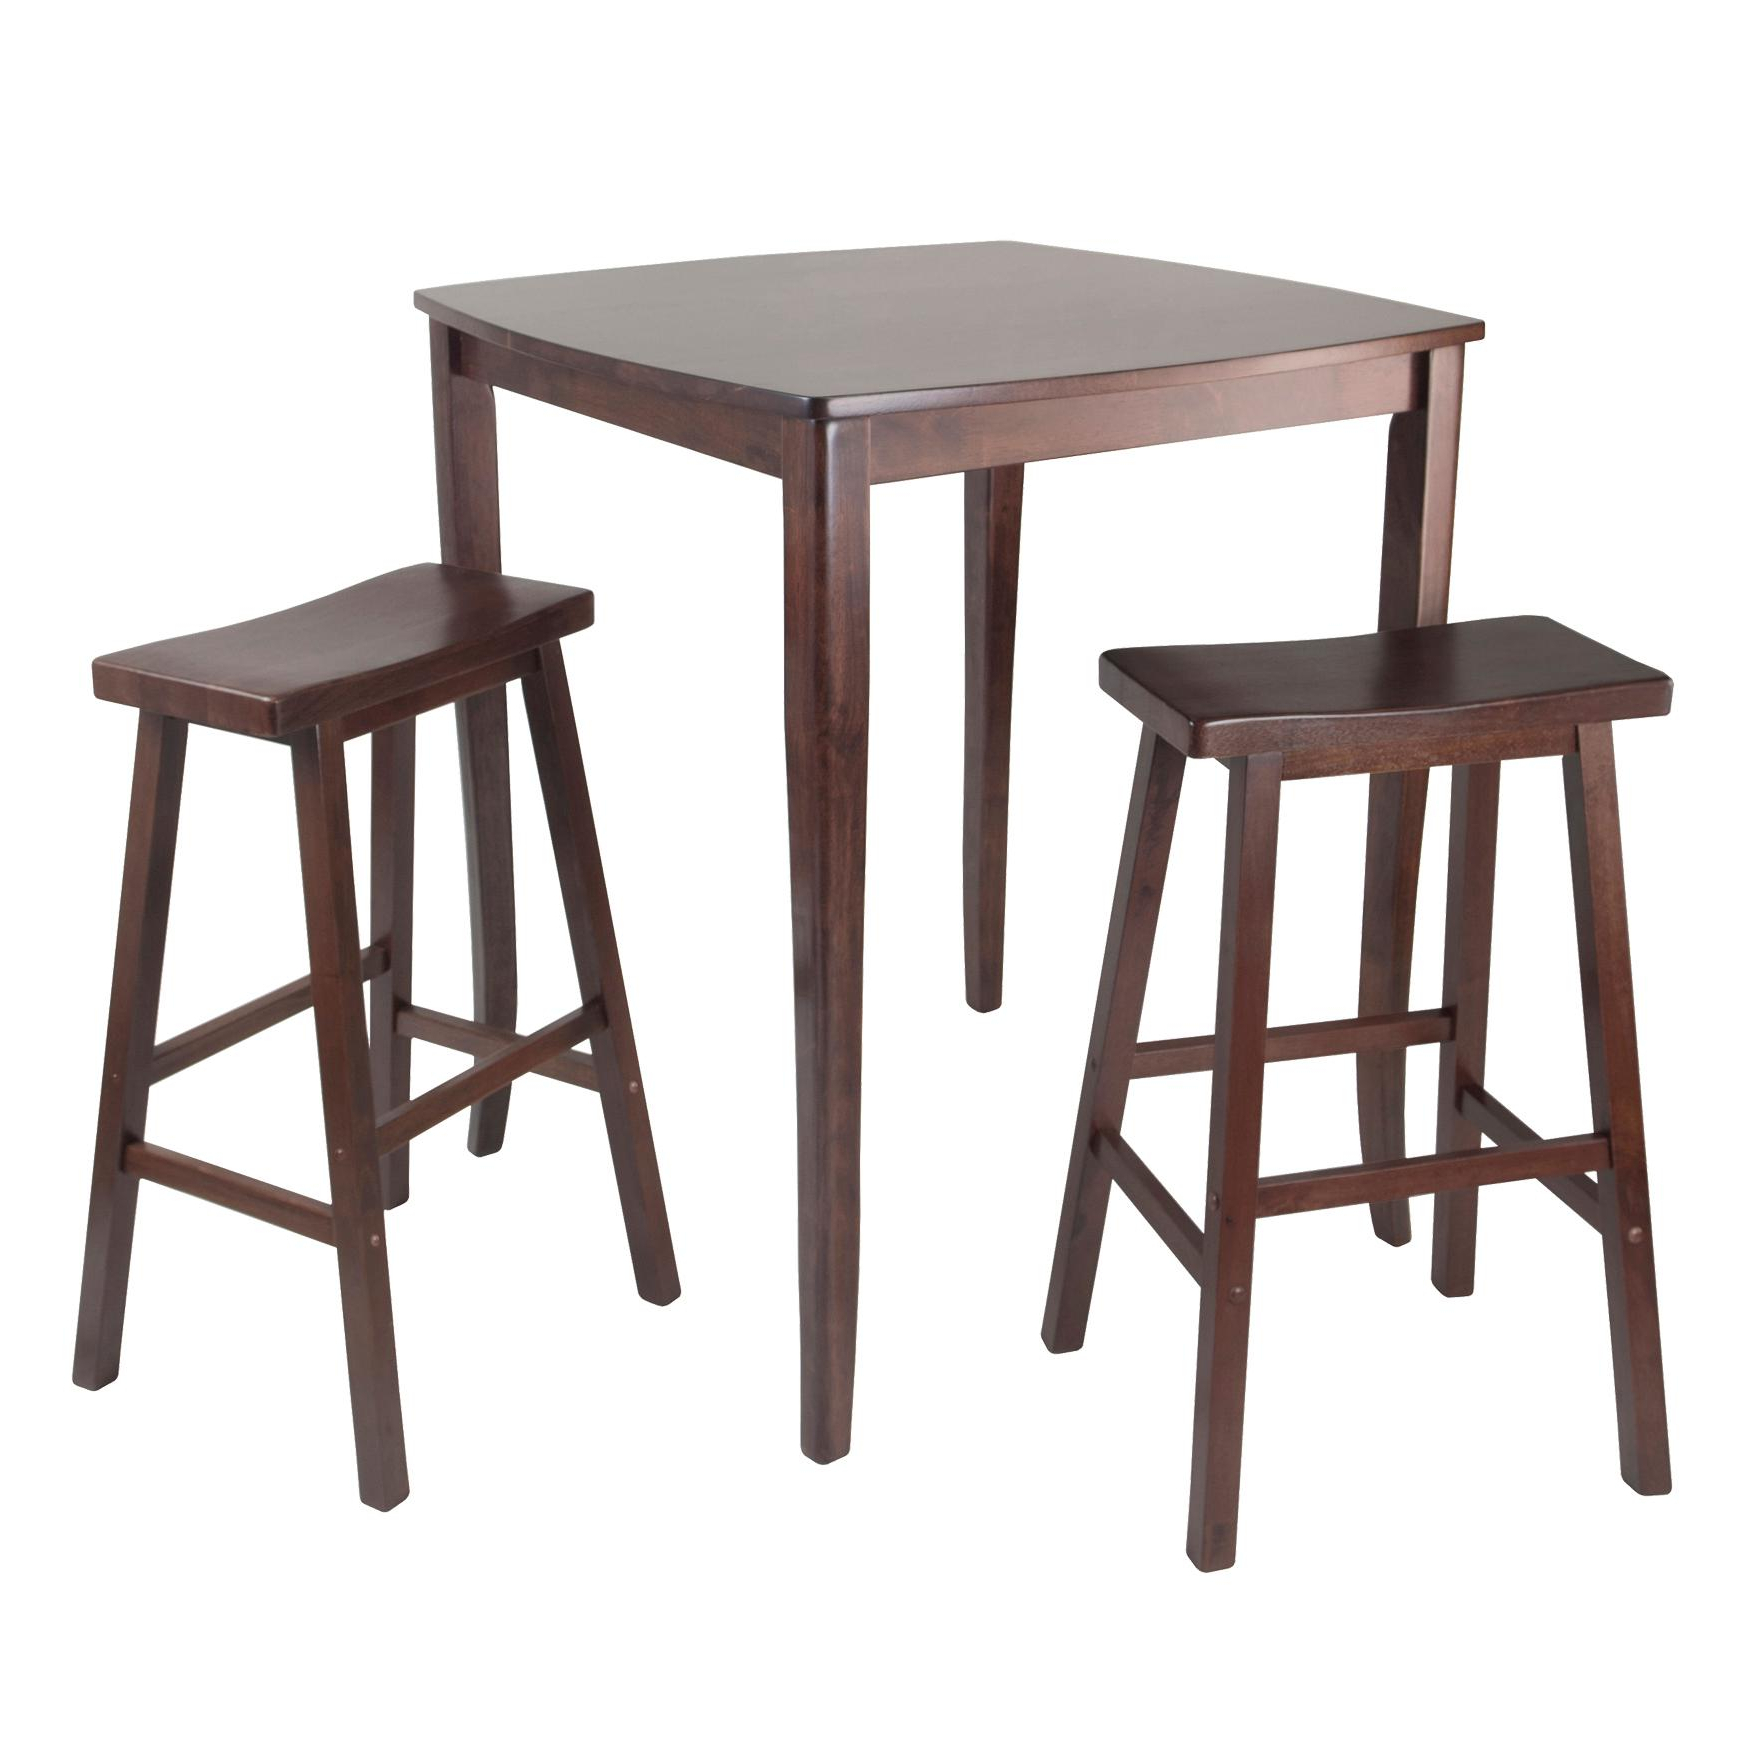 Well Liked Winsome 3 Piece Counter Height Dining Sets Pertaining To Amazon: Winsome Inglewood High/pub Dining Table With Saddle (View 15 of 25)